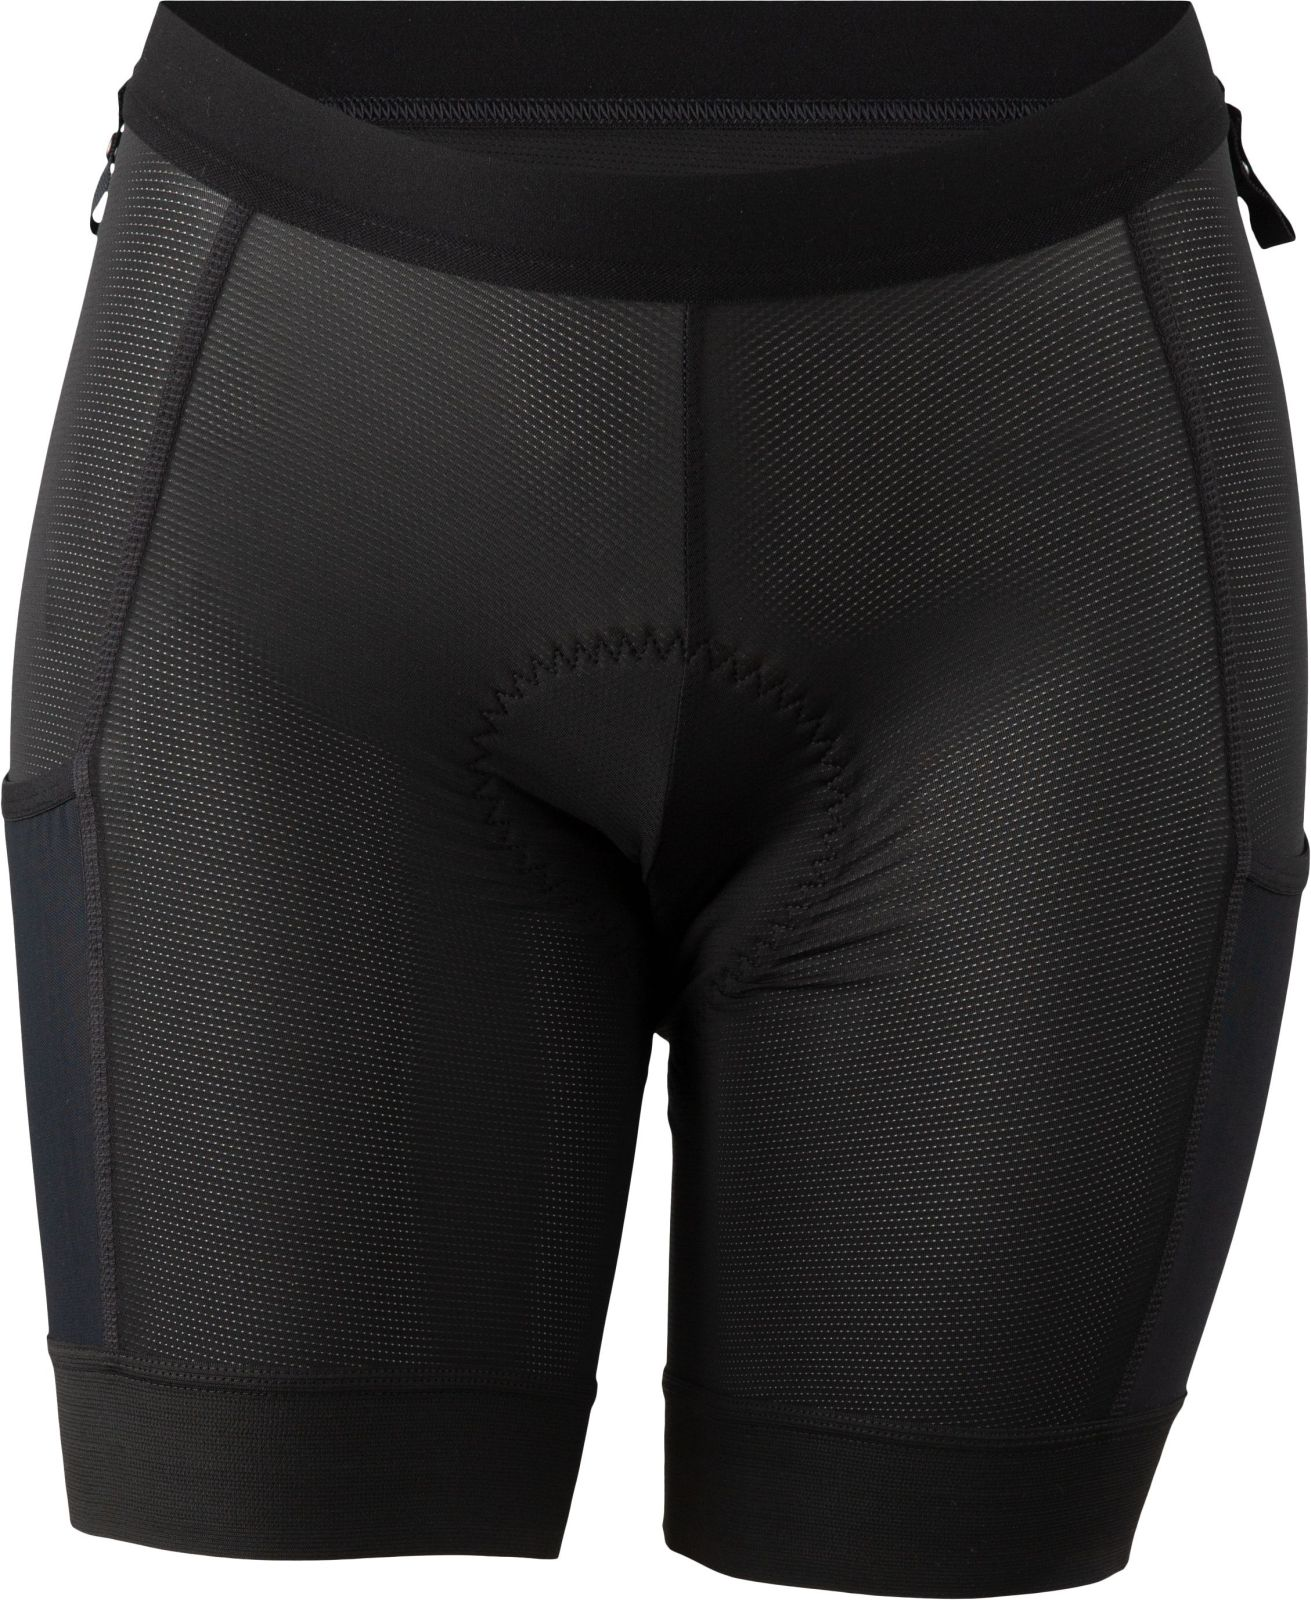 Specialized Ultralight Liner Short W/Swat Womens - ultralight liner short w/swat womens XL